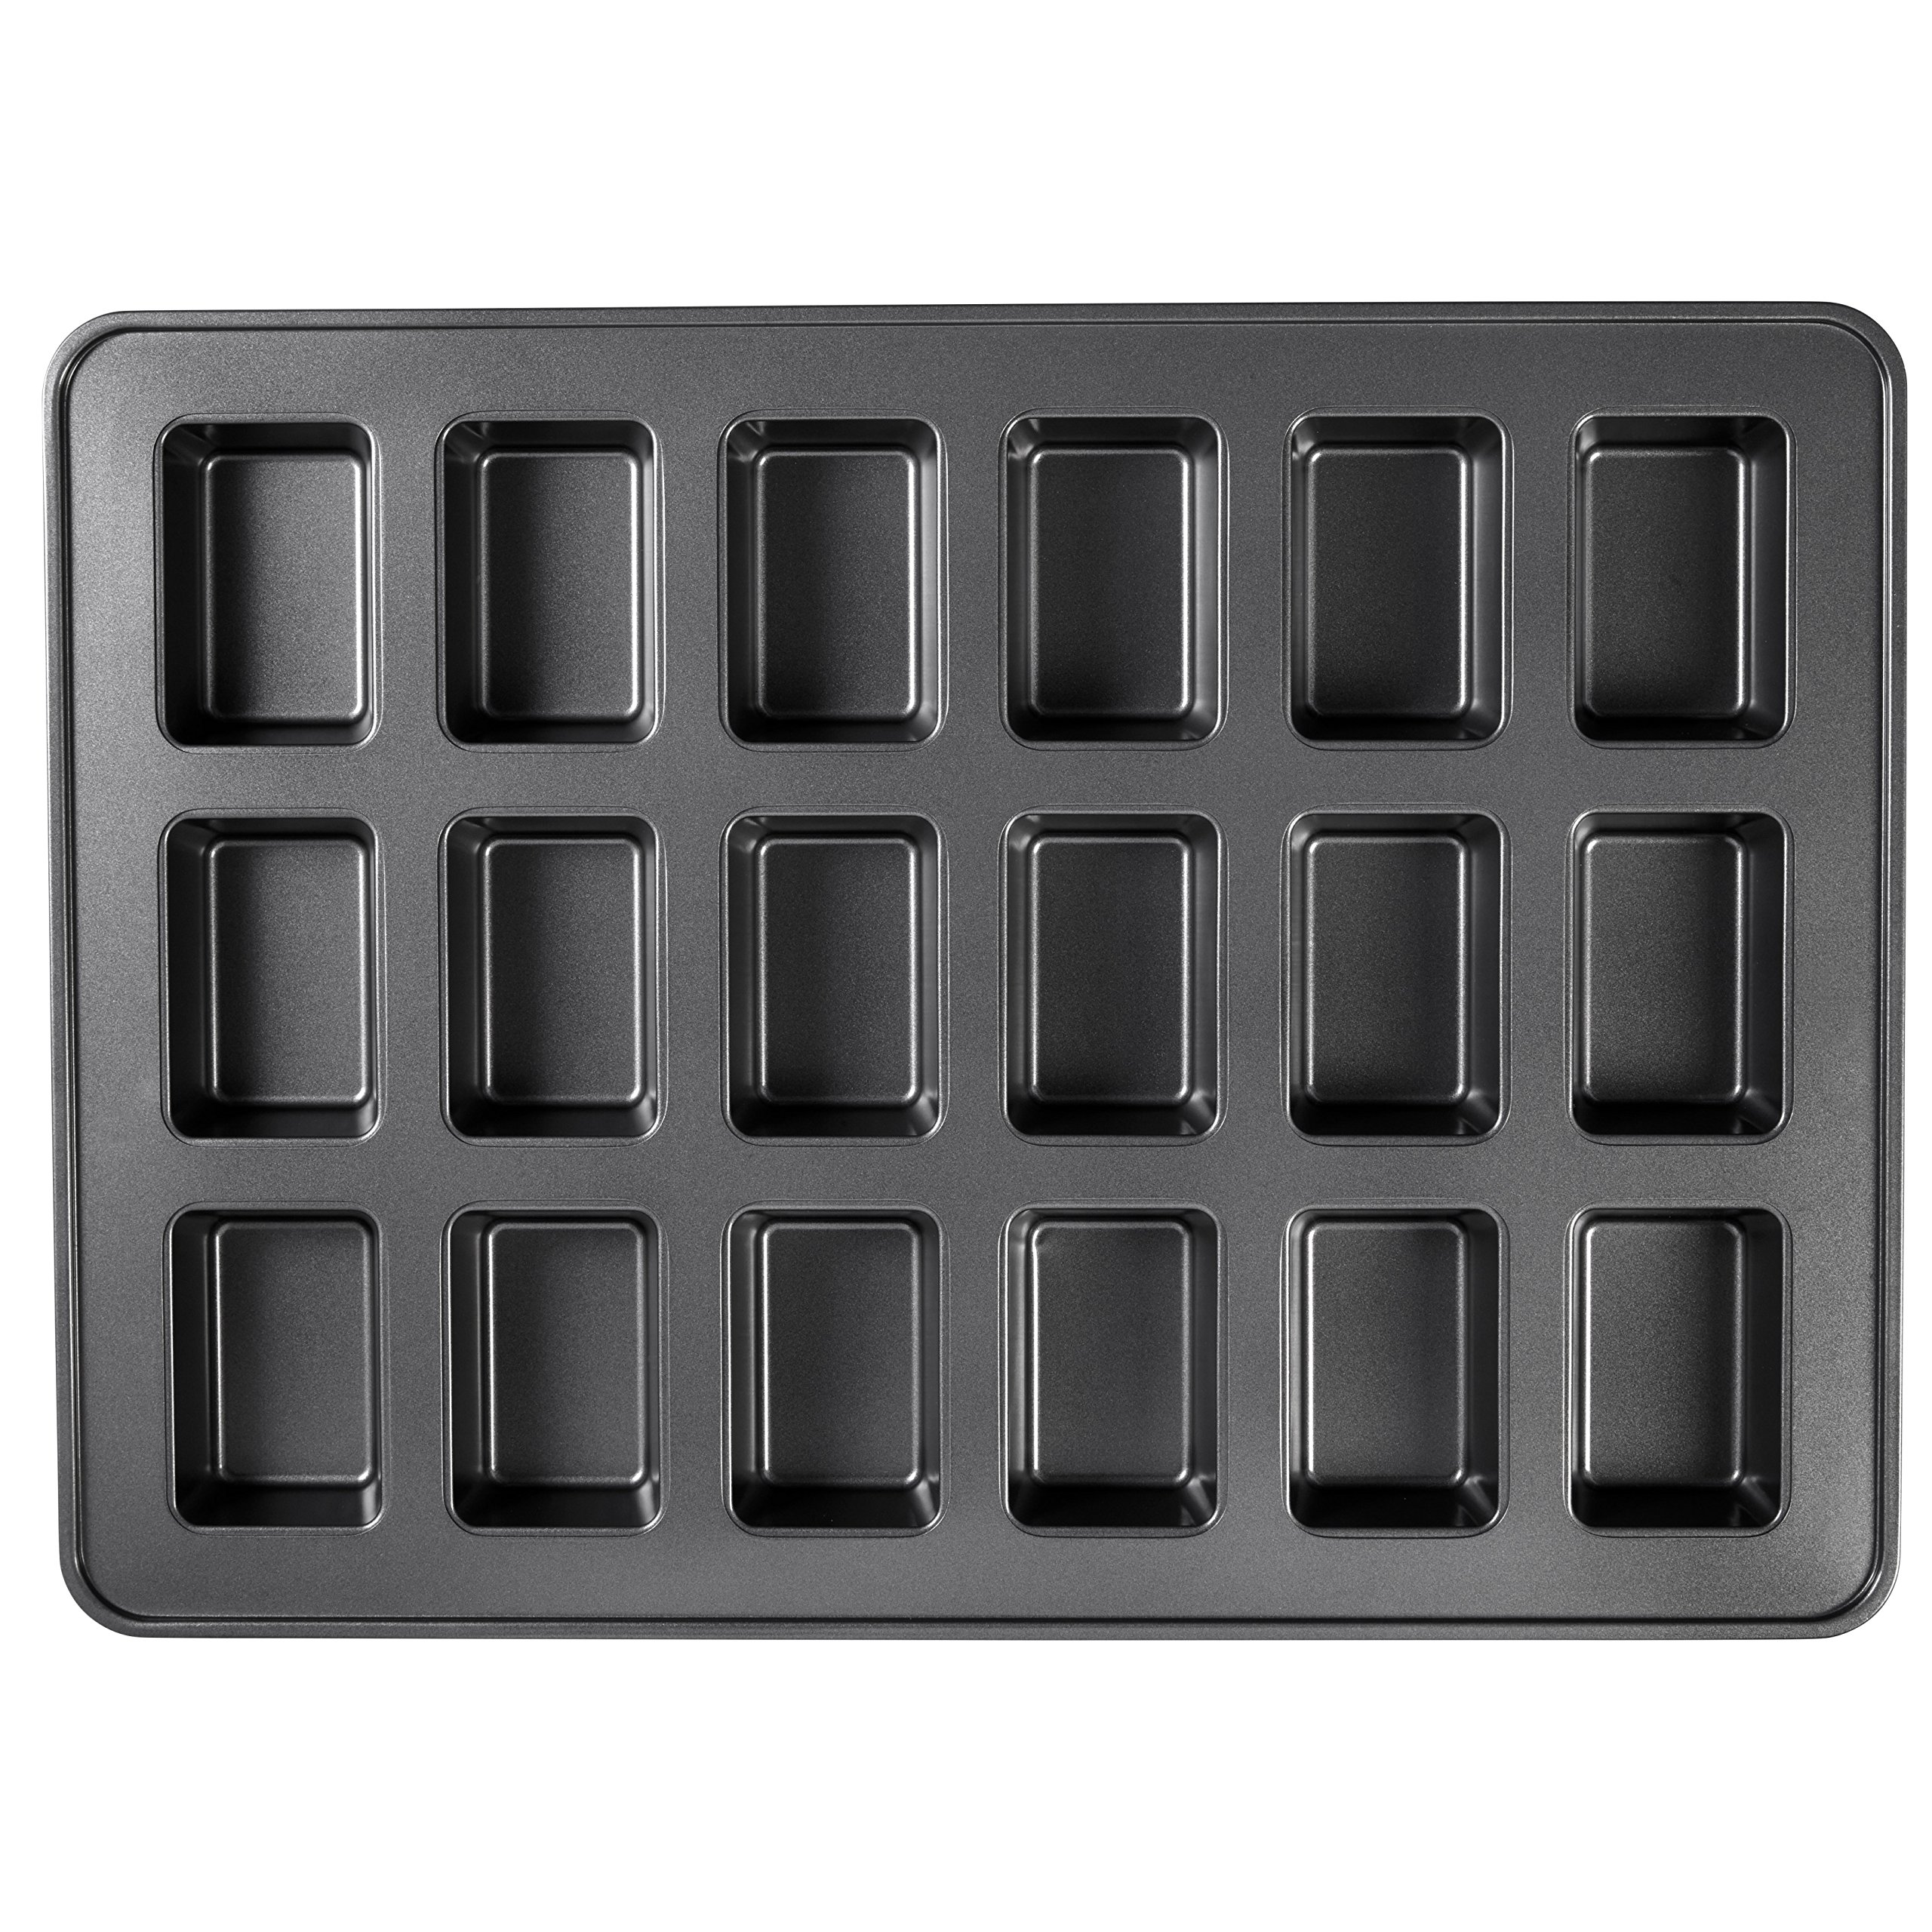 Wilton Perfect Results Premium Non-Stick Bakeware Mini Loaf Pan, 18-Cavity by Wilton